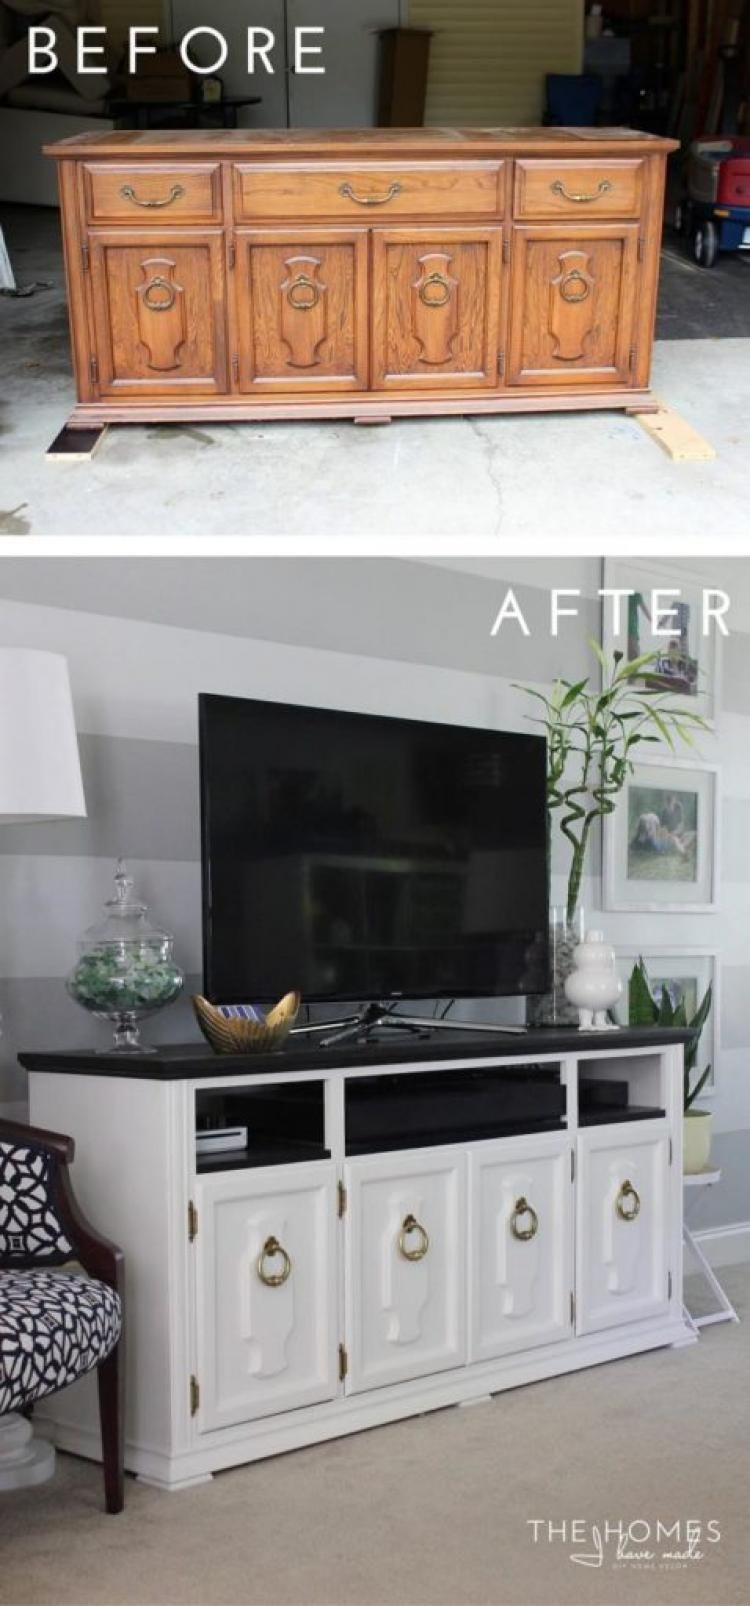 30+ Creative & Innovative Furniture Makeover Ideas, MakeUp